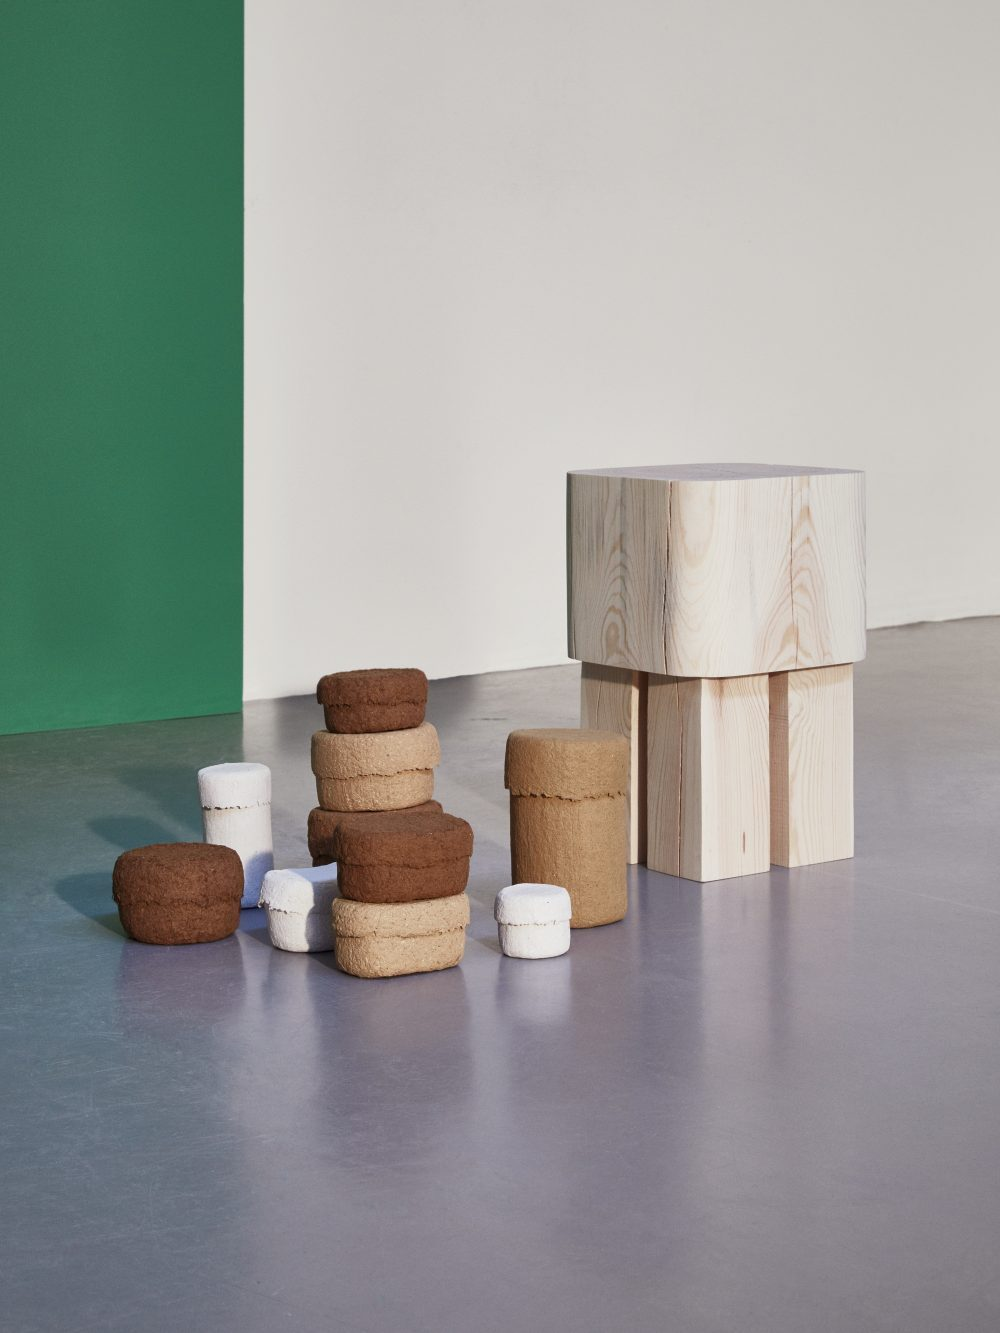 Down to earth by JENNIE ADEN : products sourced from local raw materials. HEMMA gone wild exhibition.